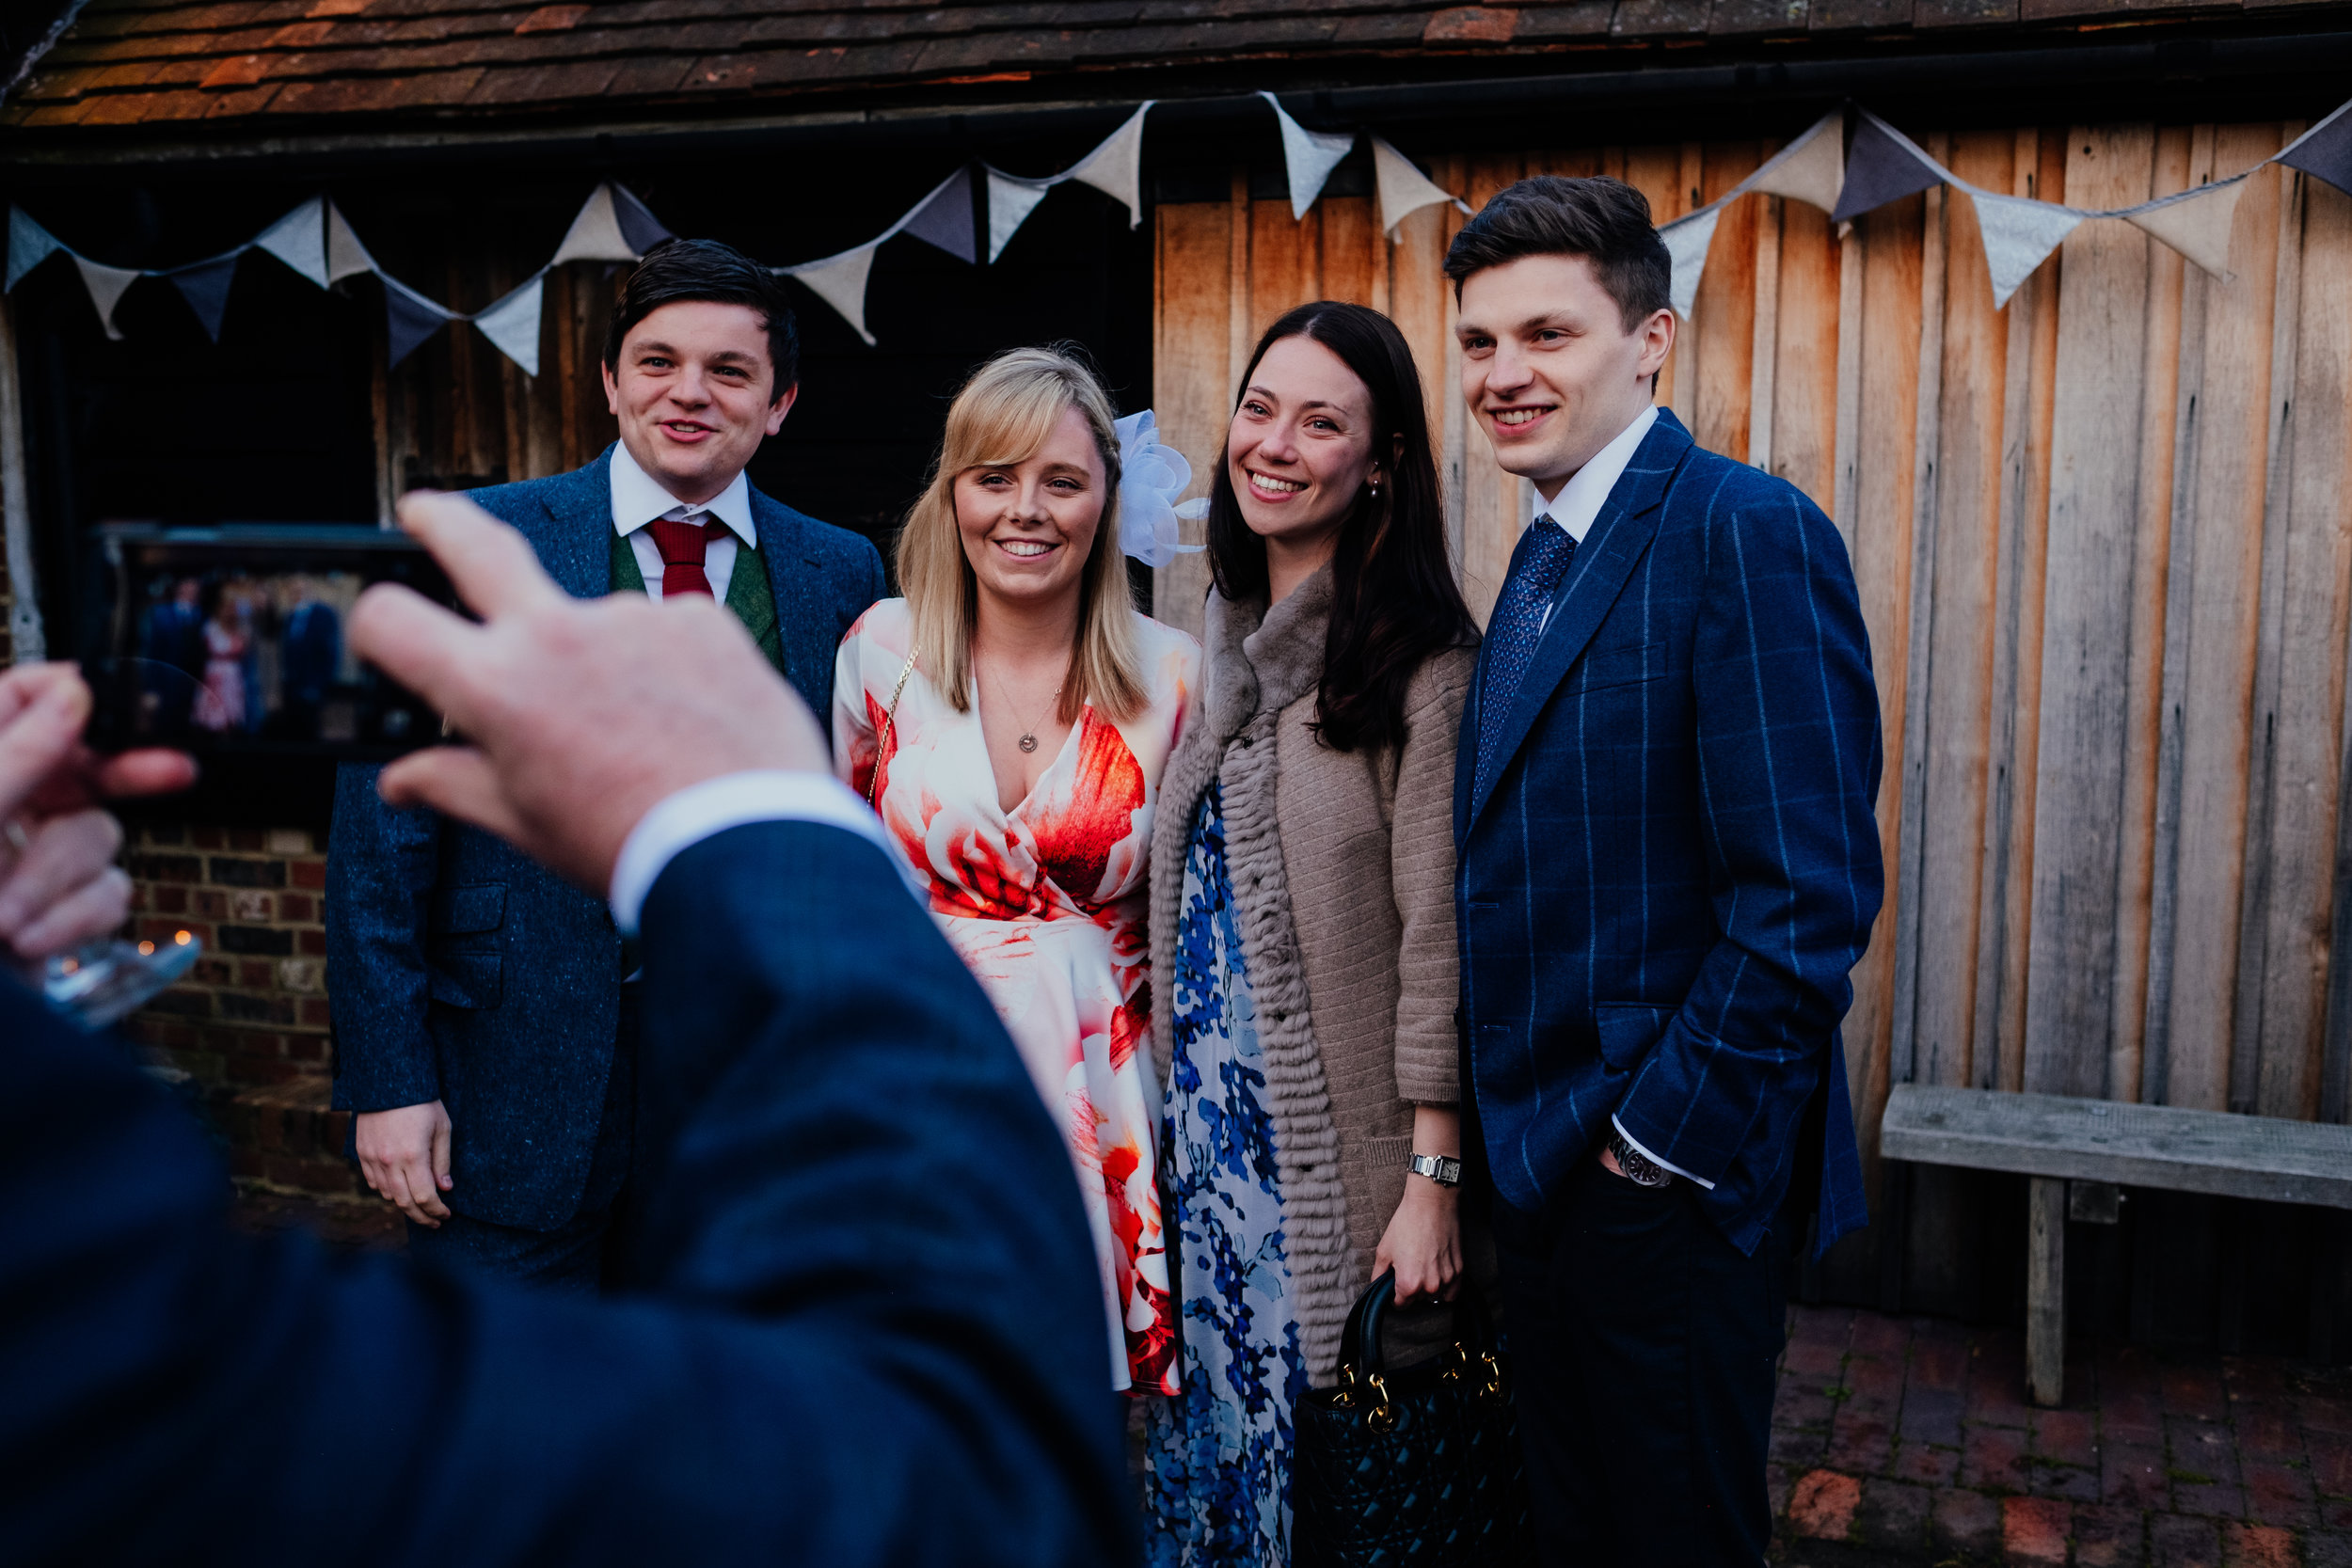 Wedding guest takes photo of other wedding guests